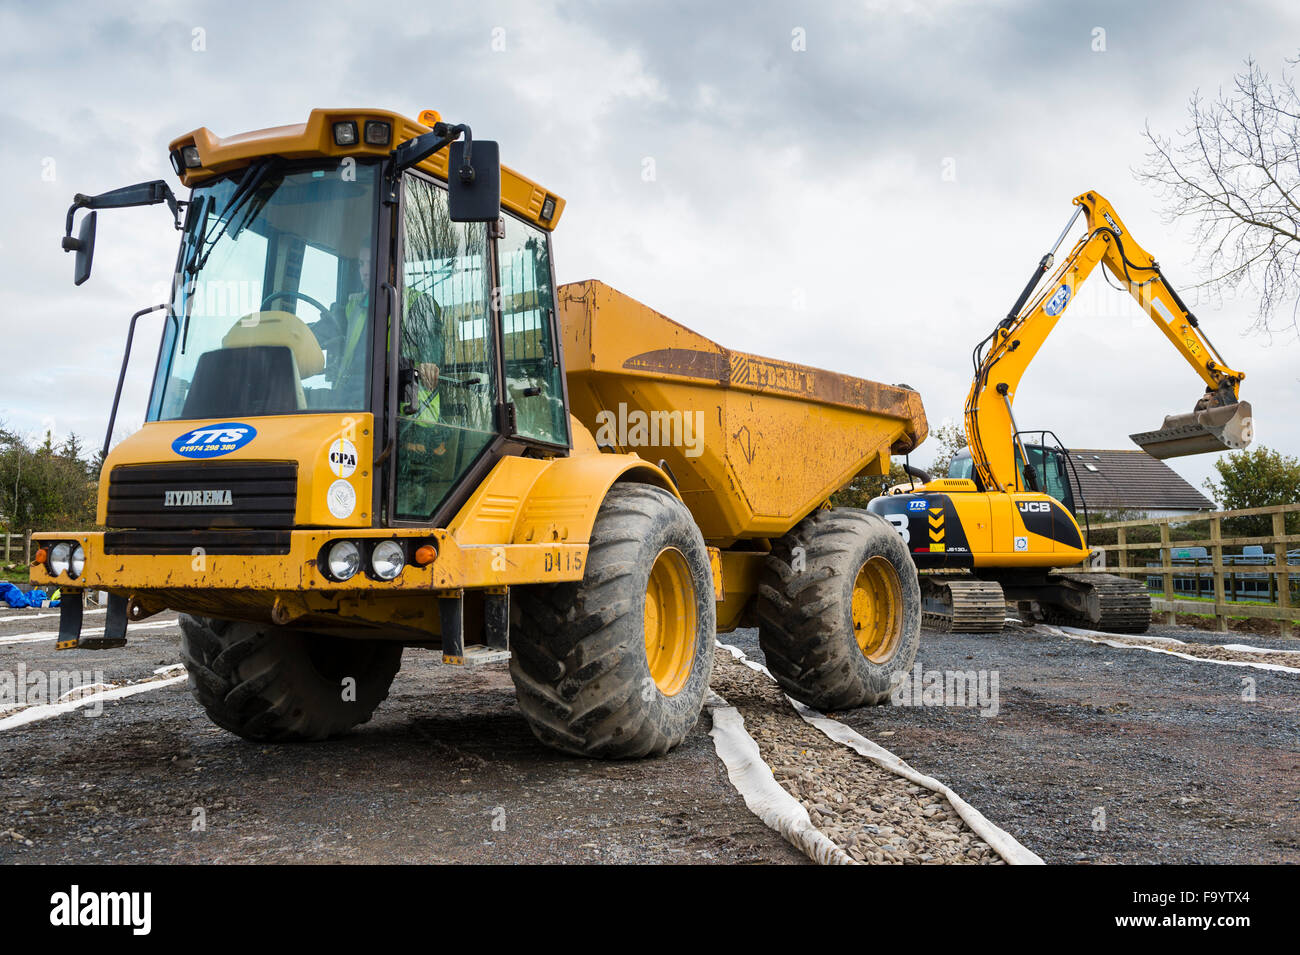 Yellow heavy dumper truck and JCB digger excavator plant ...